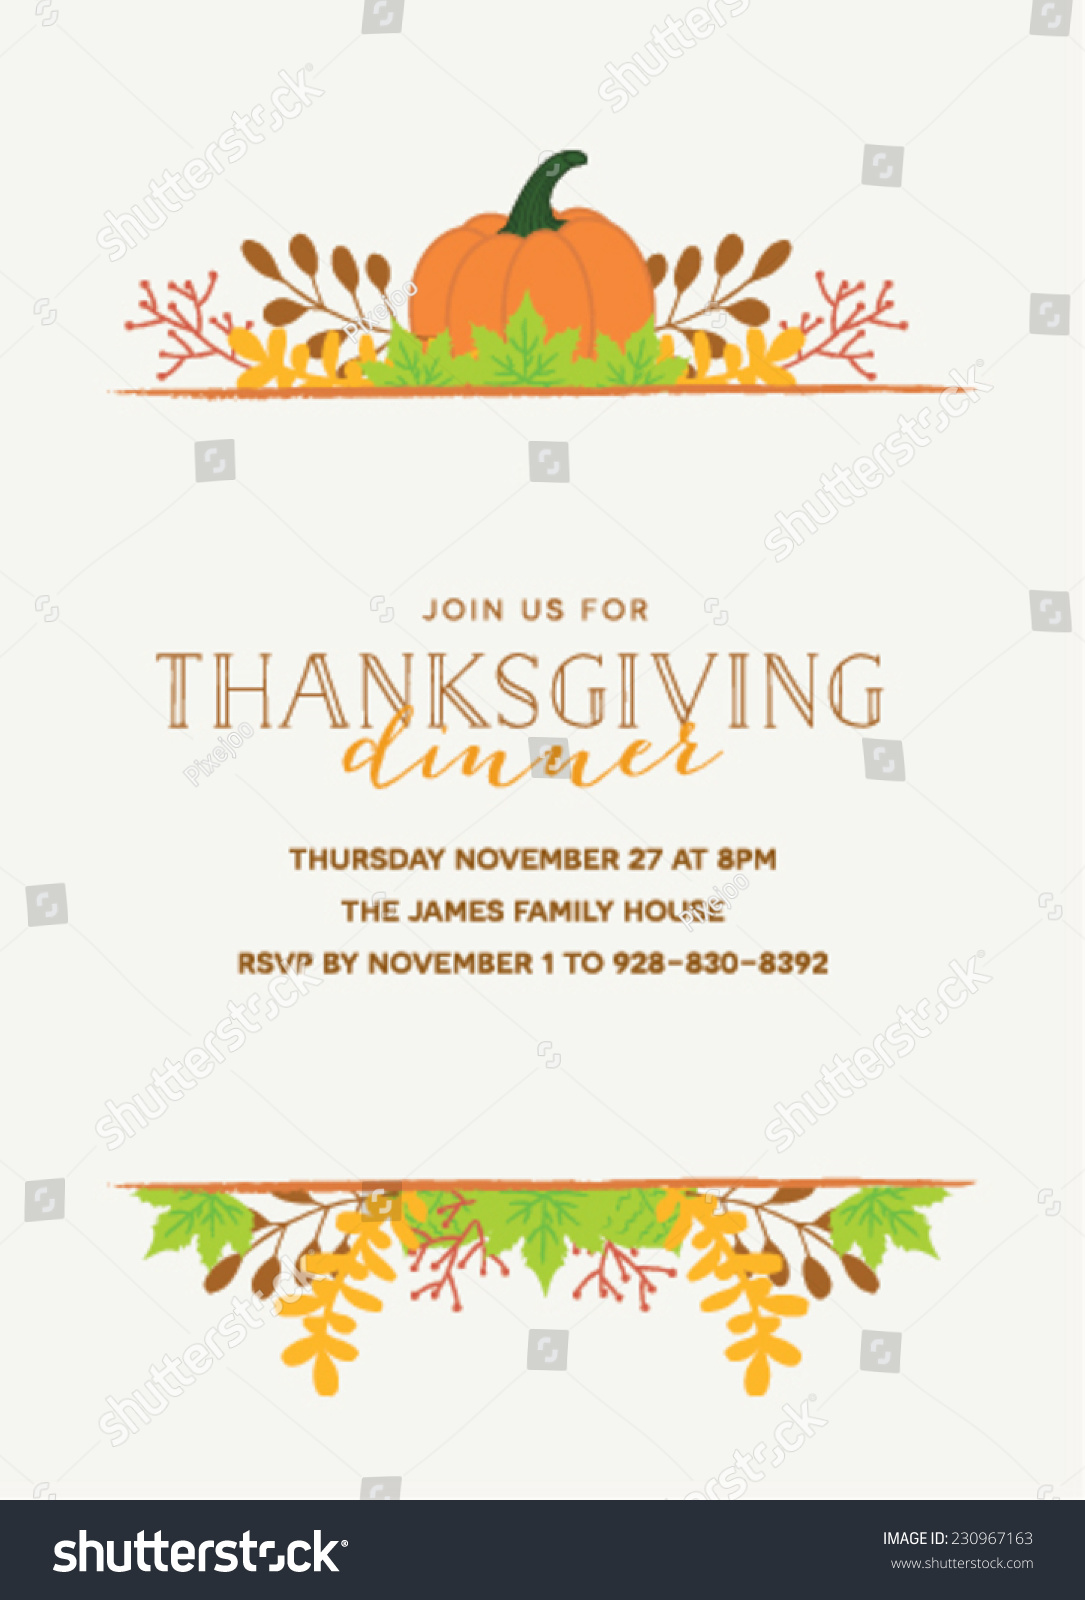 Thanksgiving invitation template pumpkin autumn leaves stock thanksgiving invitation template with pumpkin and autumn leaves stopboris Gallery